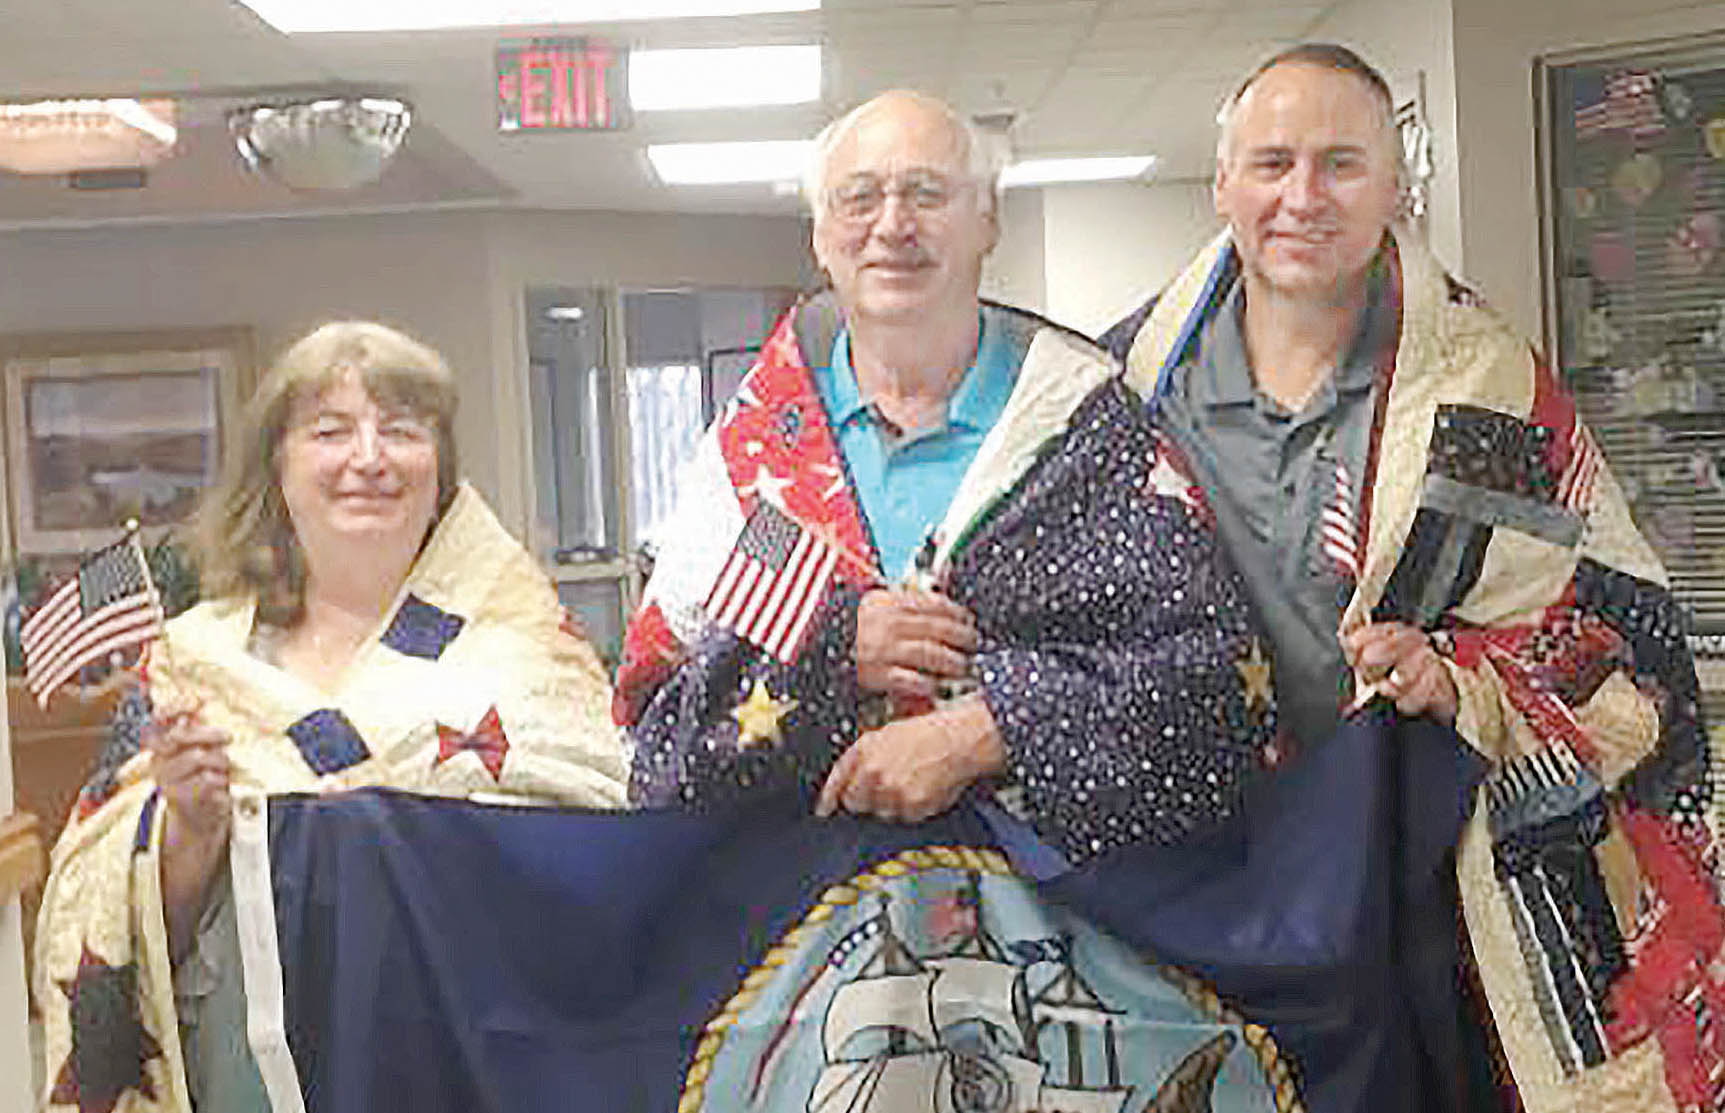 The Leifeld siblings receiving 'Quilts of Valor' at Norfolk on April 15, were (l.-r.) Deanna R. Leifeld Bogart, Kerry Leifeld and Kevin J. Leifeld.